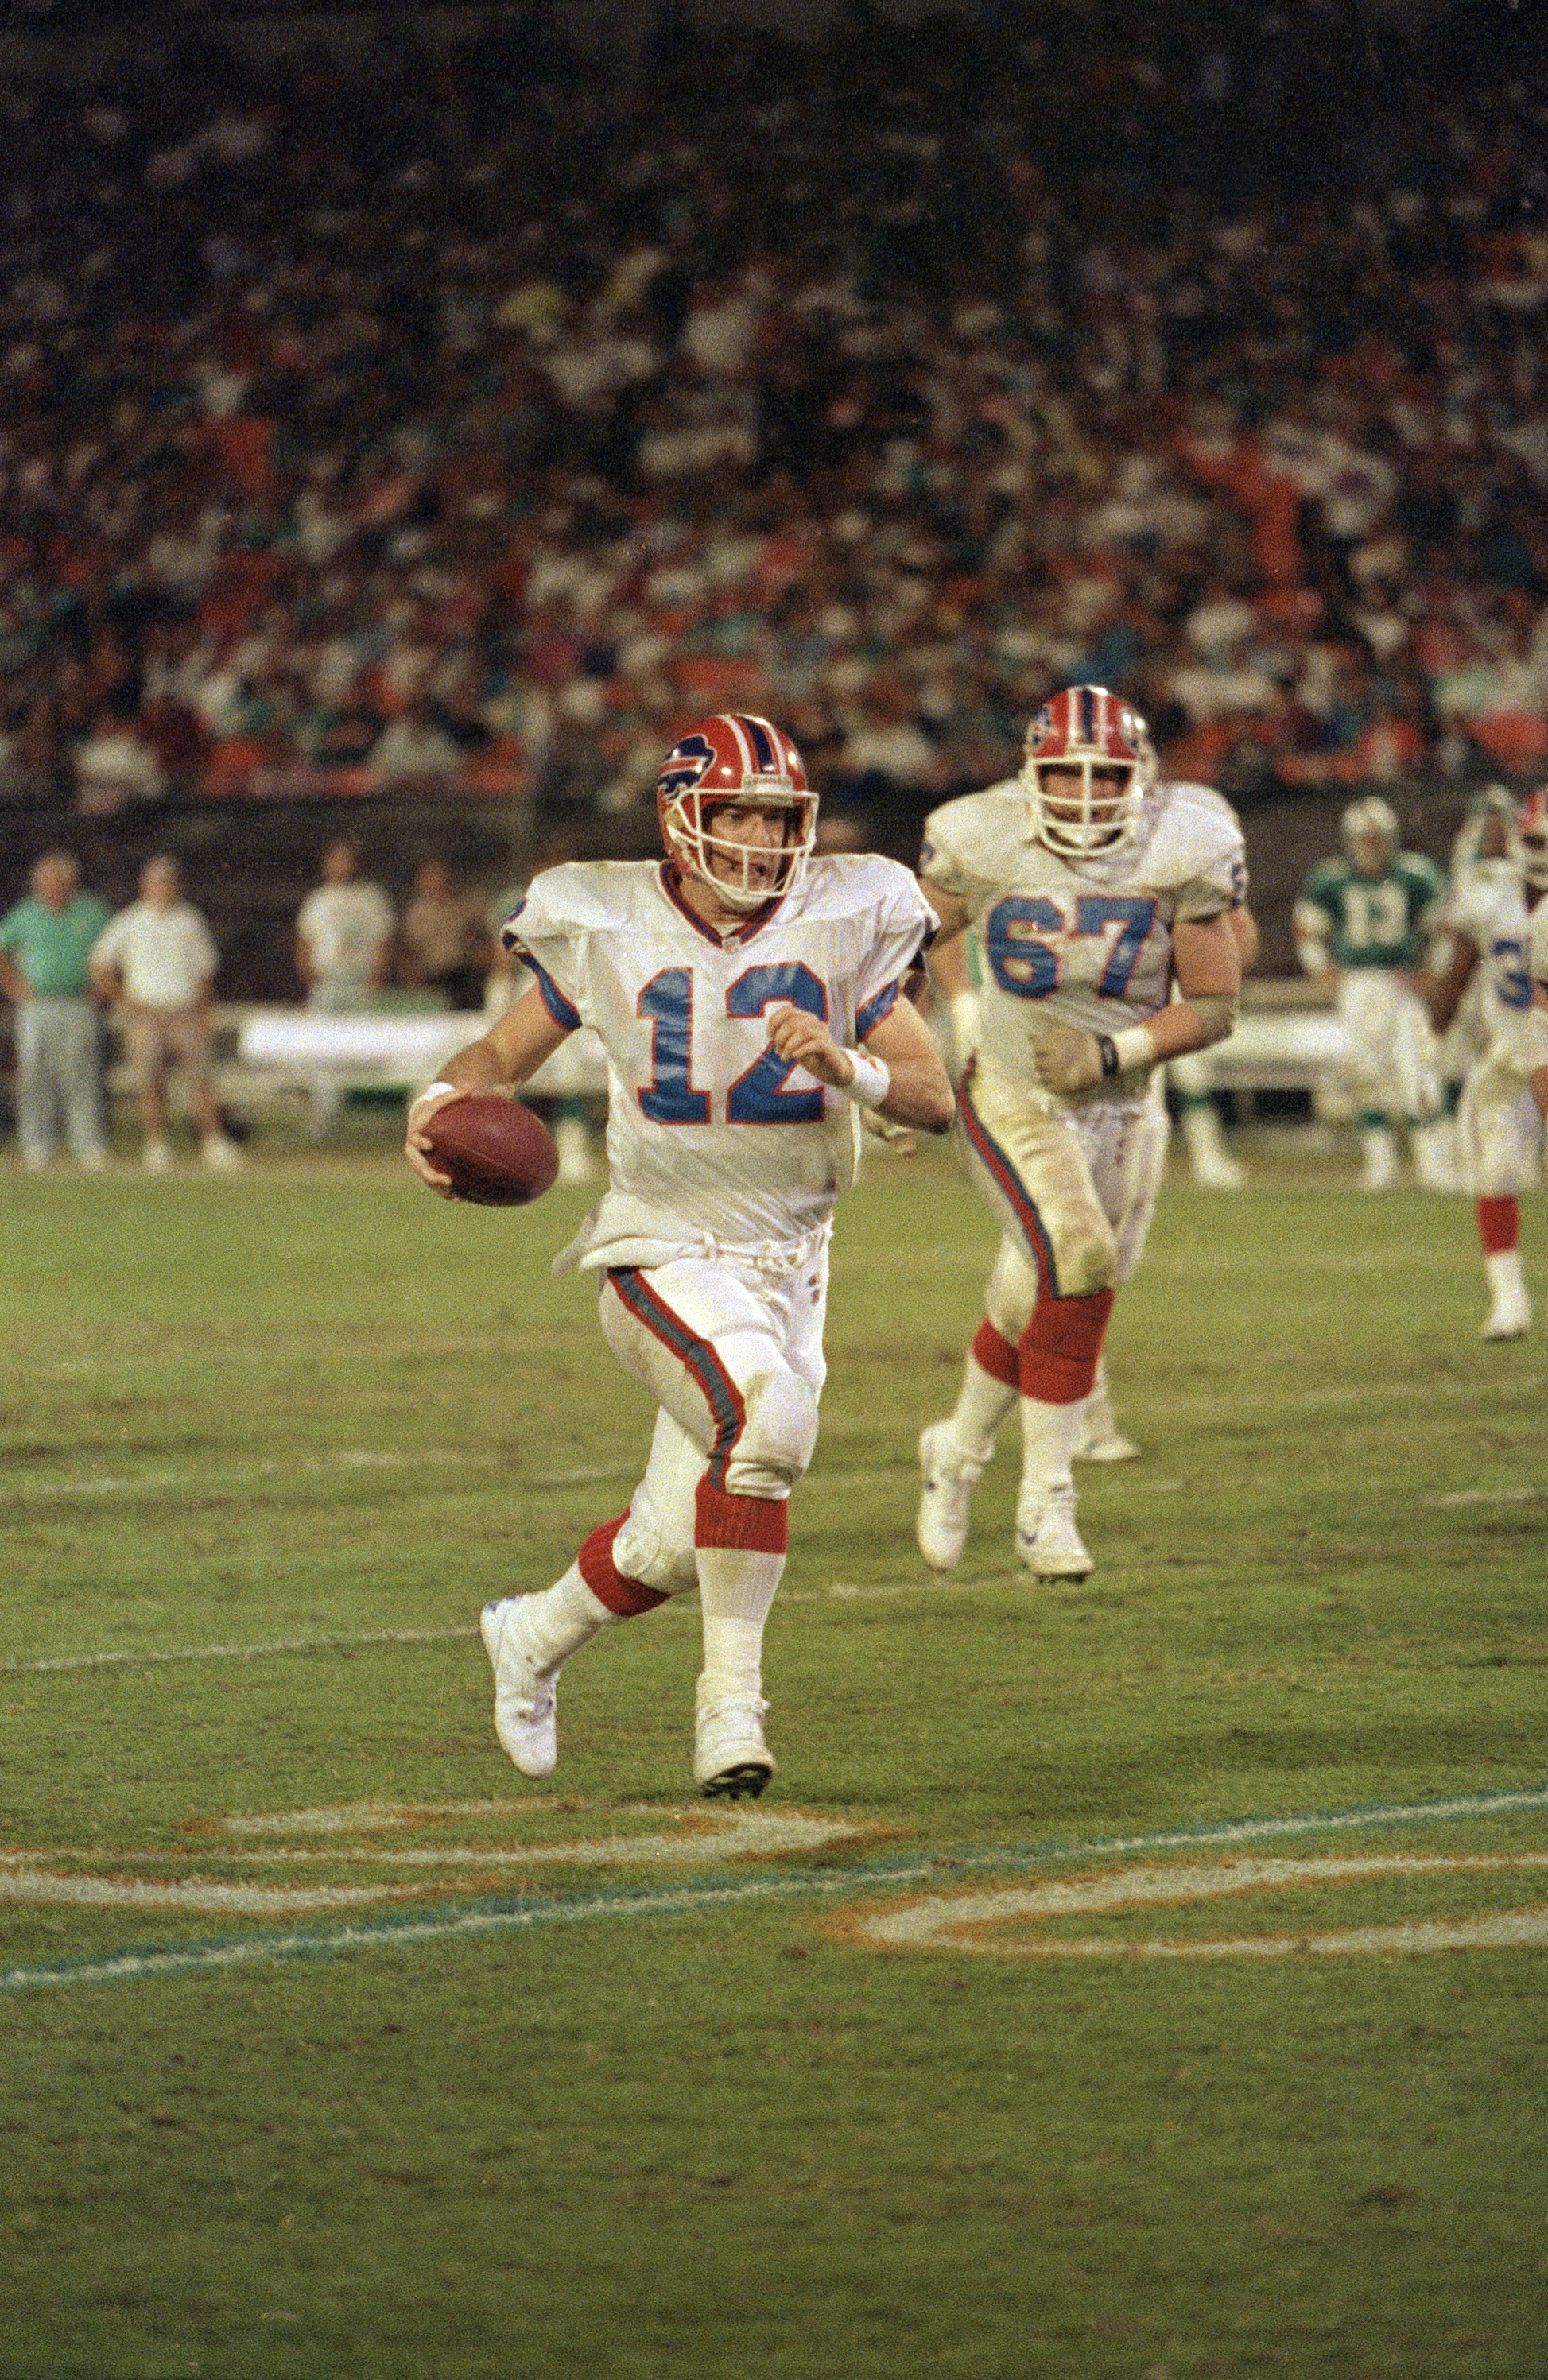 Buffalo Bills quarterback Jim Kelly runs with the ball in the third quarter at Joe Robbie Stadium Monday Night, Nov. 20, 1991 in Miami, Fla. (AP Photo/Jim Spoonts)